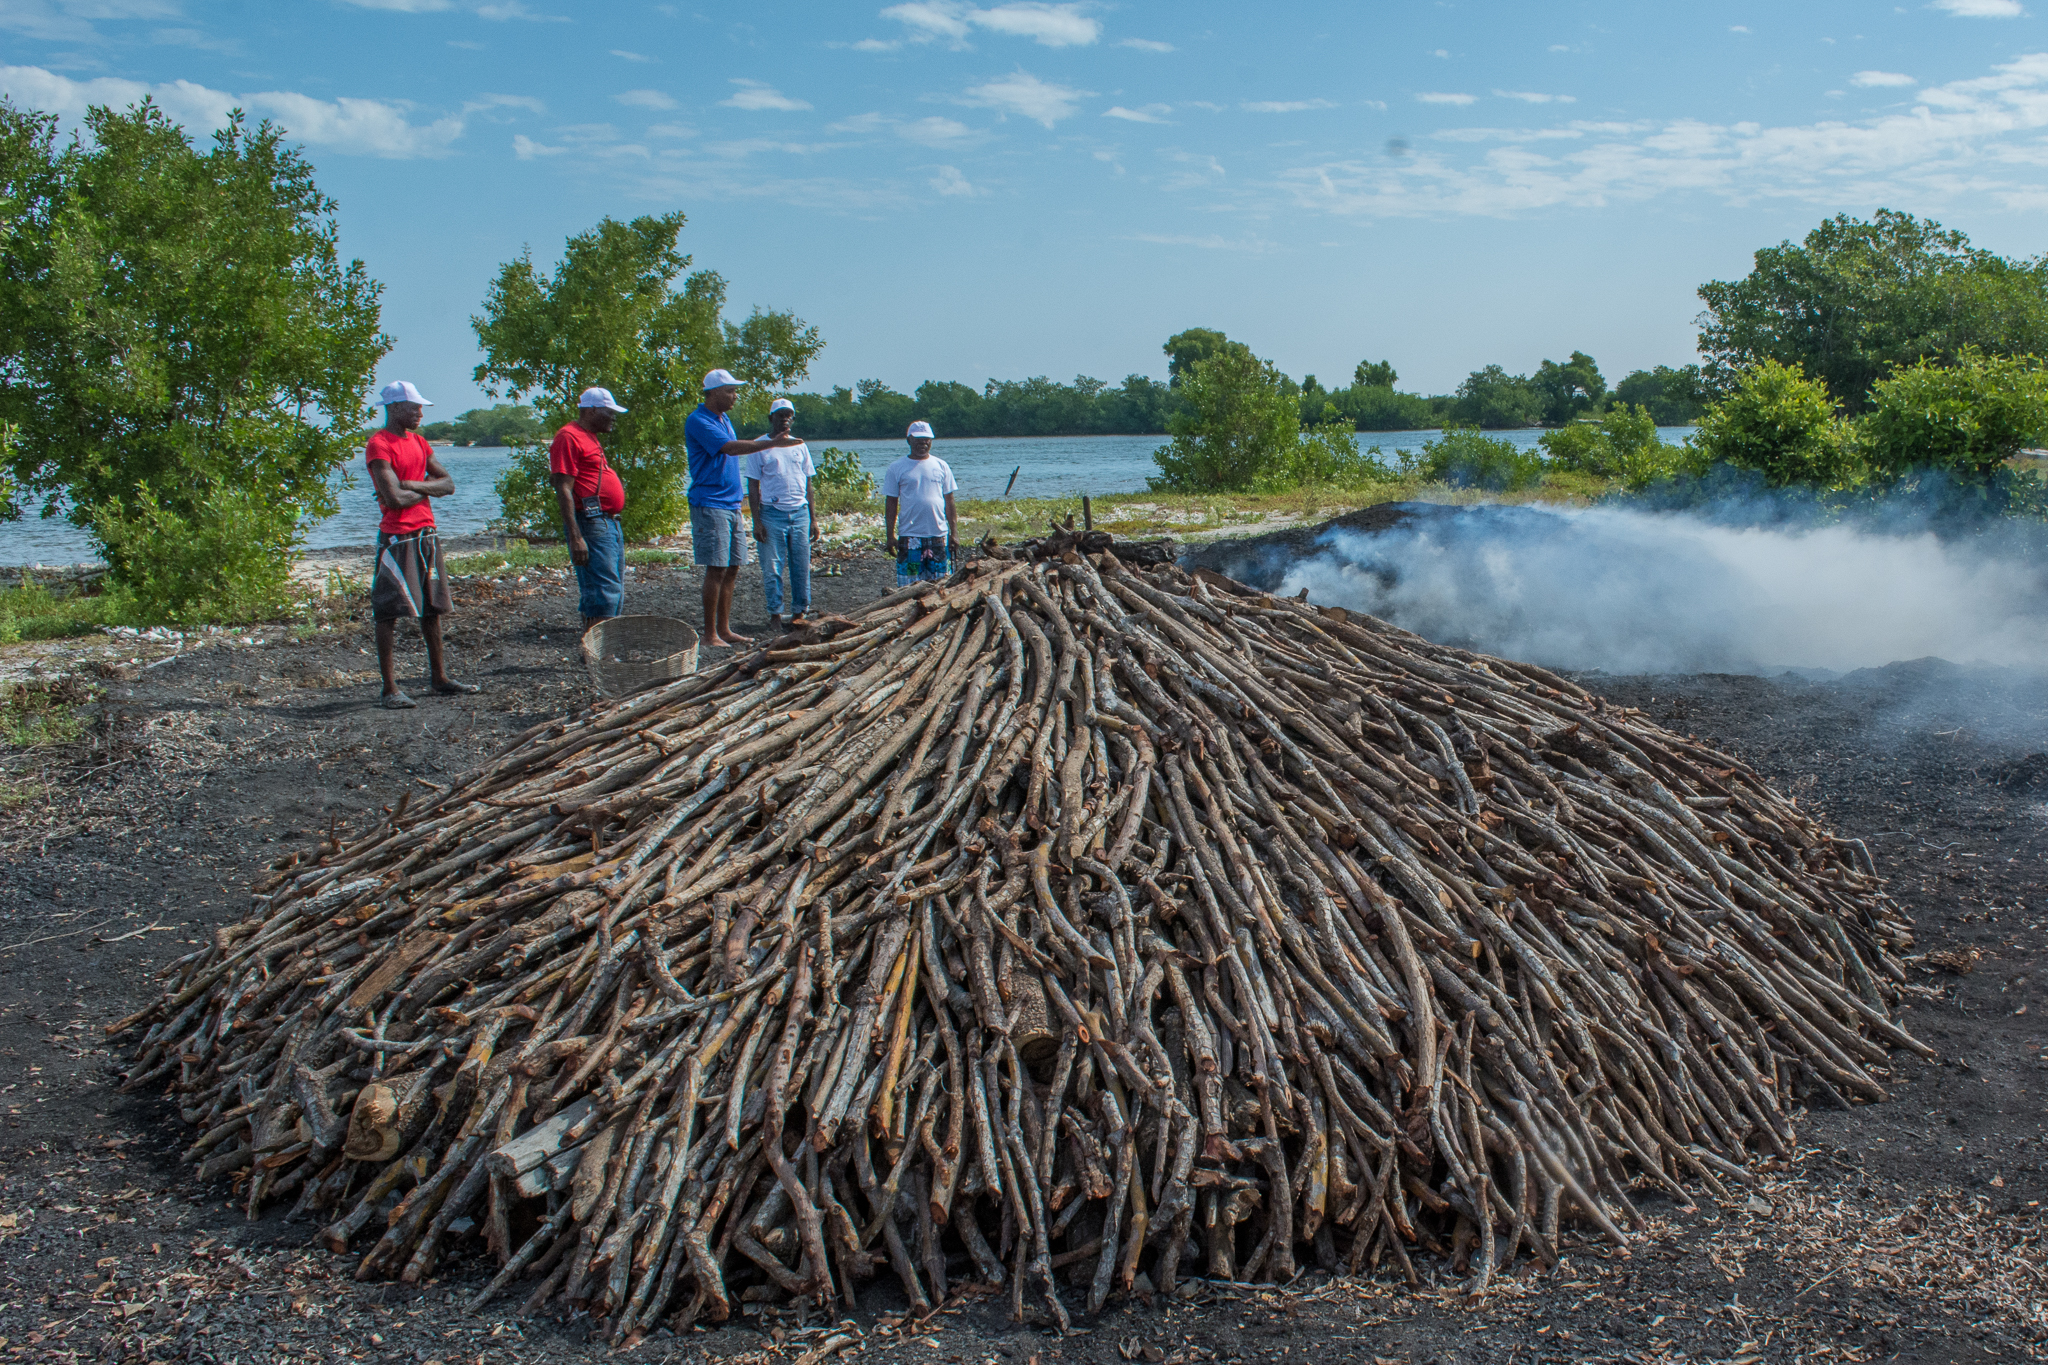 The high demand for charcoal is one of the biggest threats to mangroves. Charcoal ovens like these are used to convert mangrove roots and branches into fuel. ©2016 Jean Wiener.